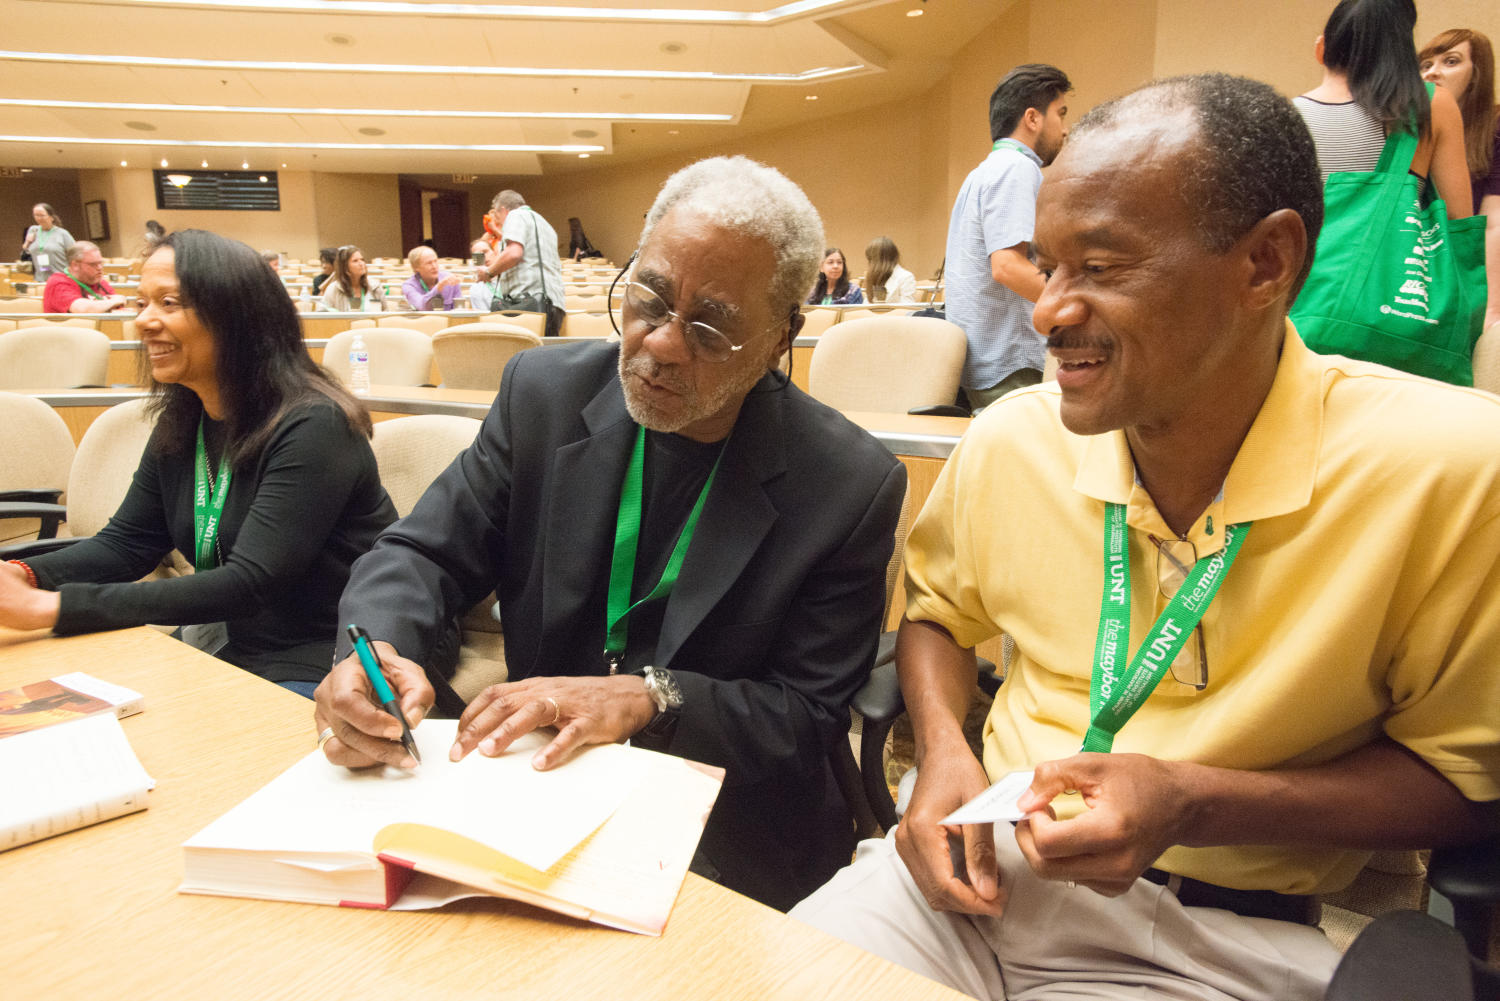 [Charles Johnson signing book], Photograph of Dr. Charles Johnson, a professor emeritus at the University of Washington and author, signing a keynote attendees copy of one of his books. He is sitting down at one of the tables in the conference and auditorium room where his keynote was given. Jesika Fisher is standing behind him with other attendees. The event was a part of the 2017 Mayborn Literary Nonfiction Conference at the Hilton DFW Lakes Executive Conference in Grapevine, TX.,